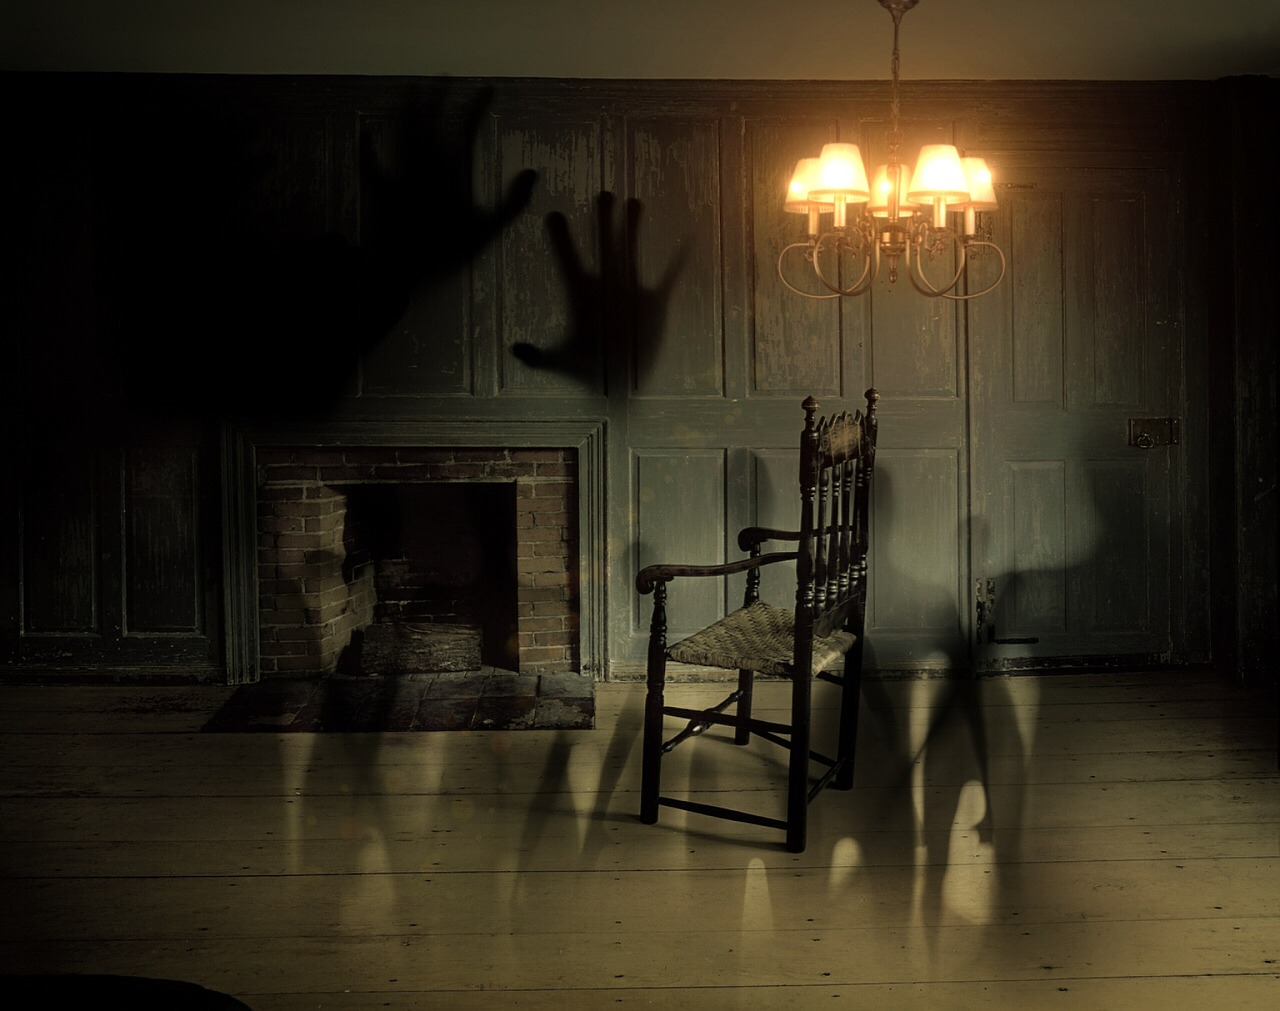 Darkened room with chandelier lit and shadowy figures seen shown on the walls along with larger shadowy hands.